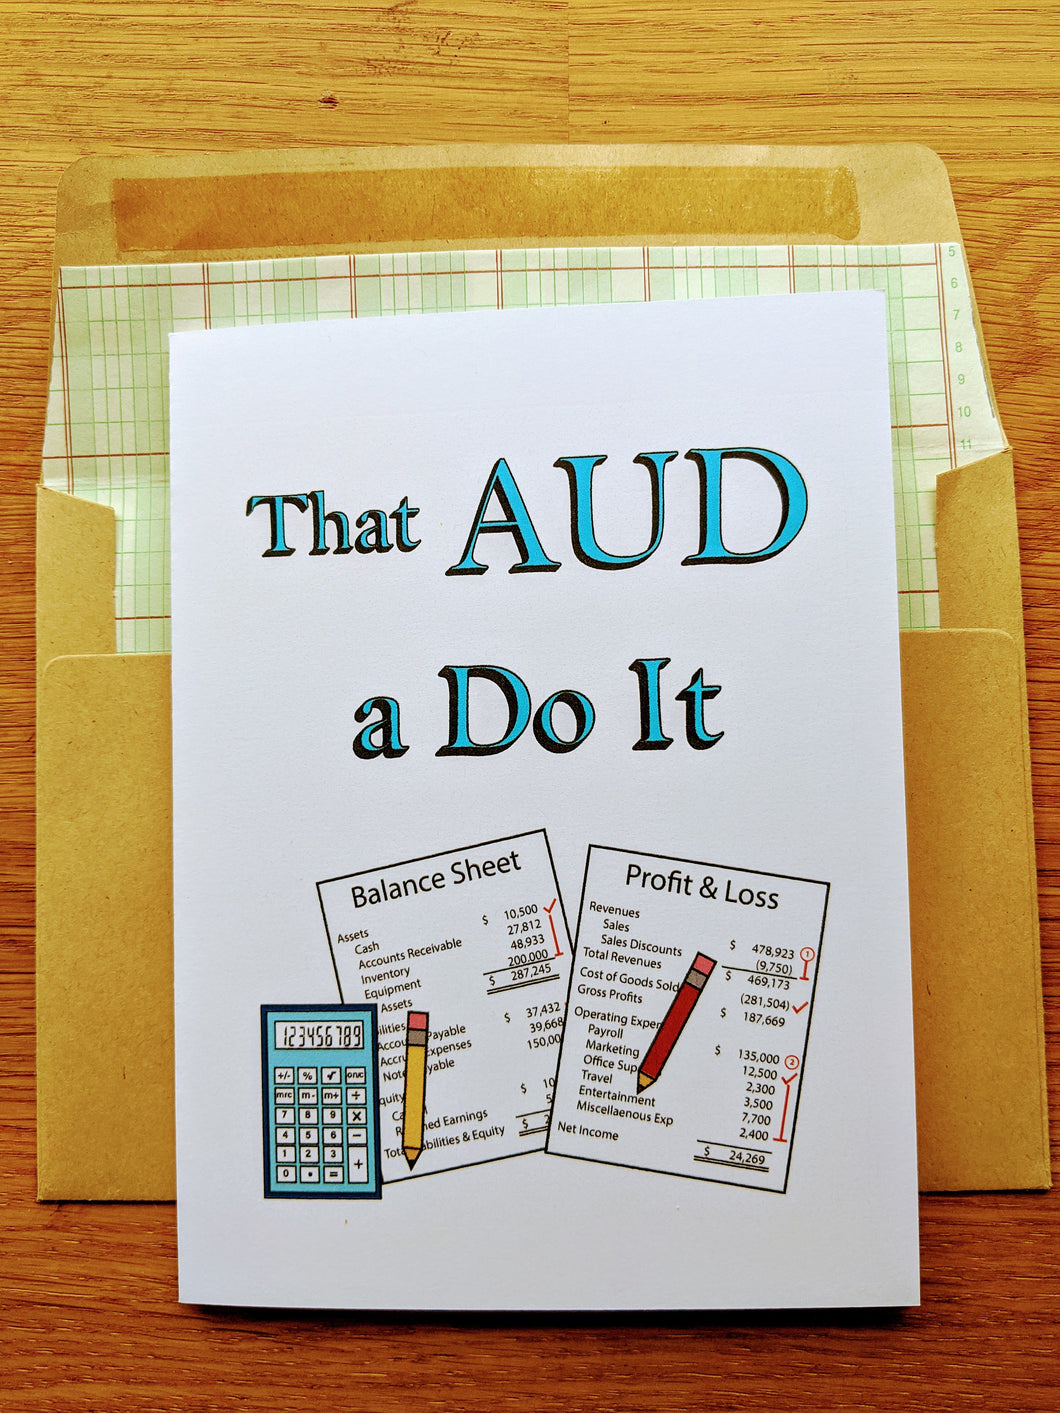 CPA Exam Motivational Greeting Card - AUD